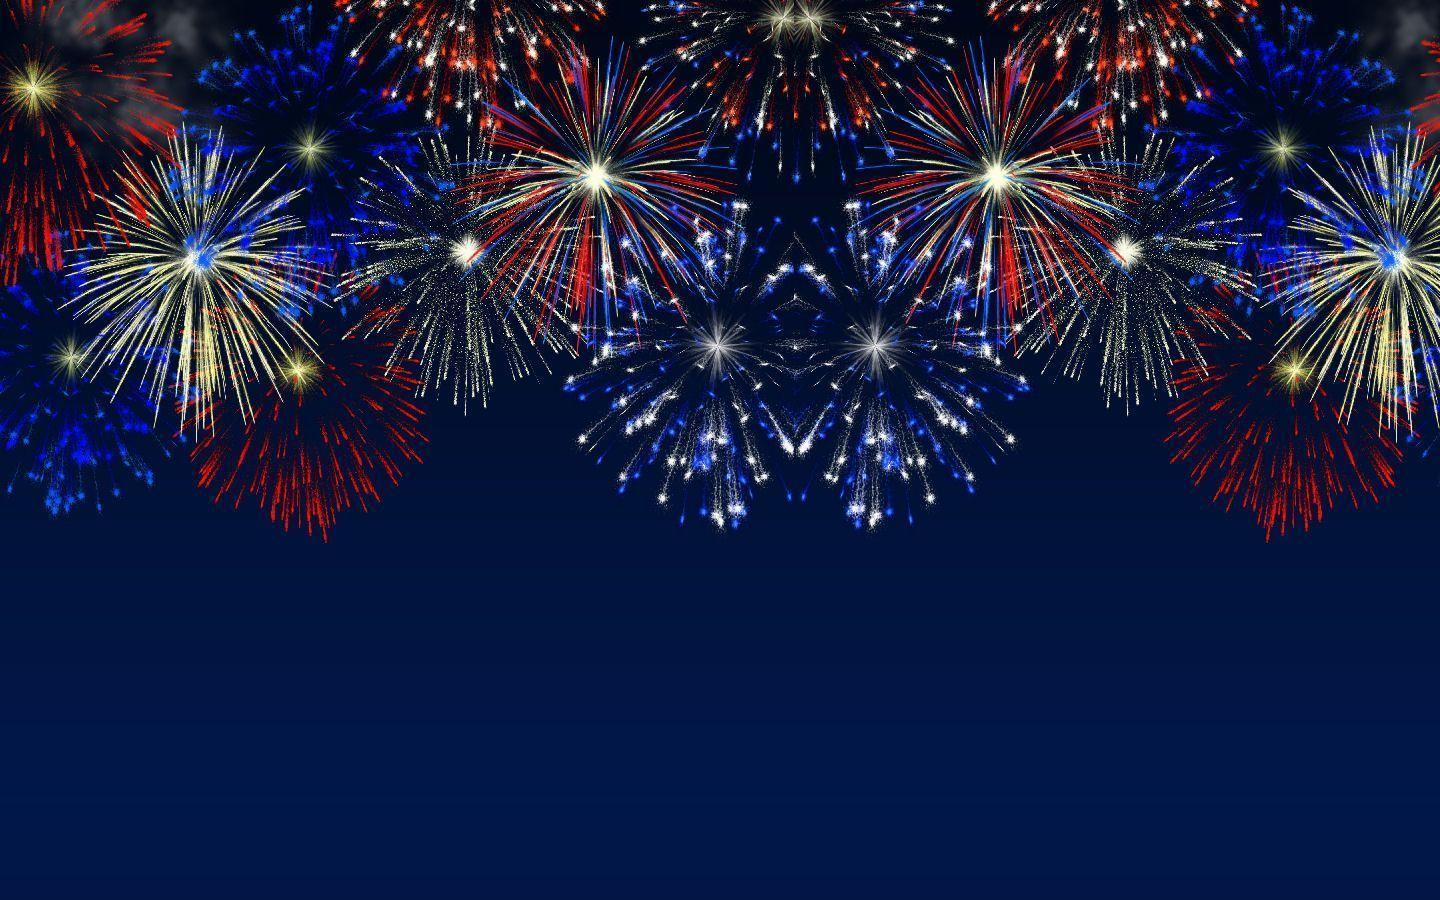 Fireworks Twitter Backgrounds, Fireworks Twitter Themes